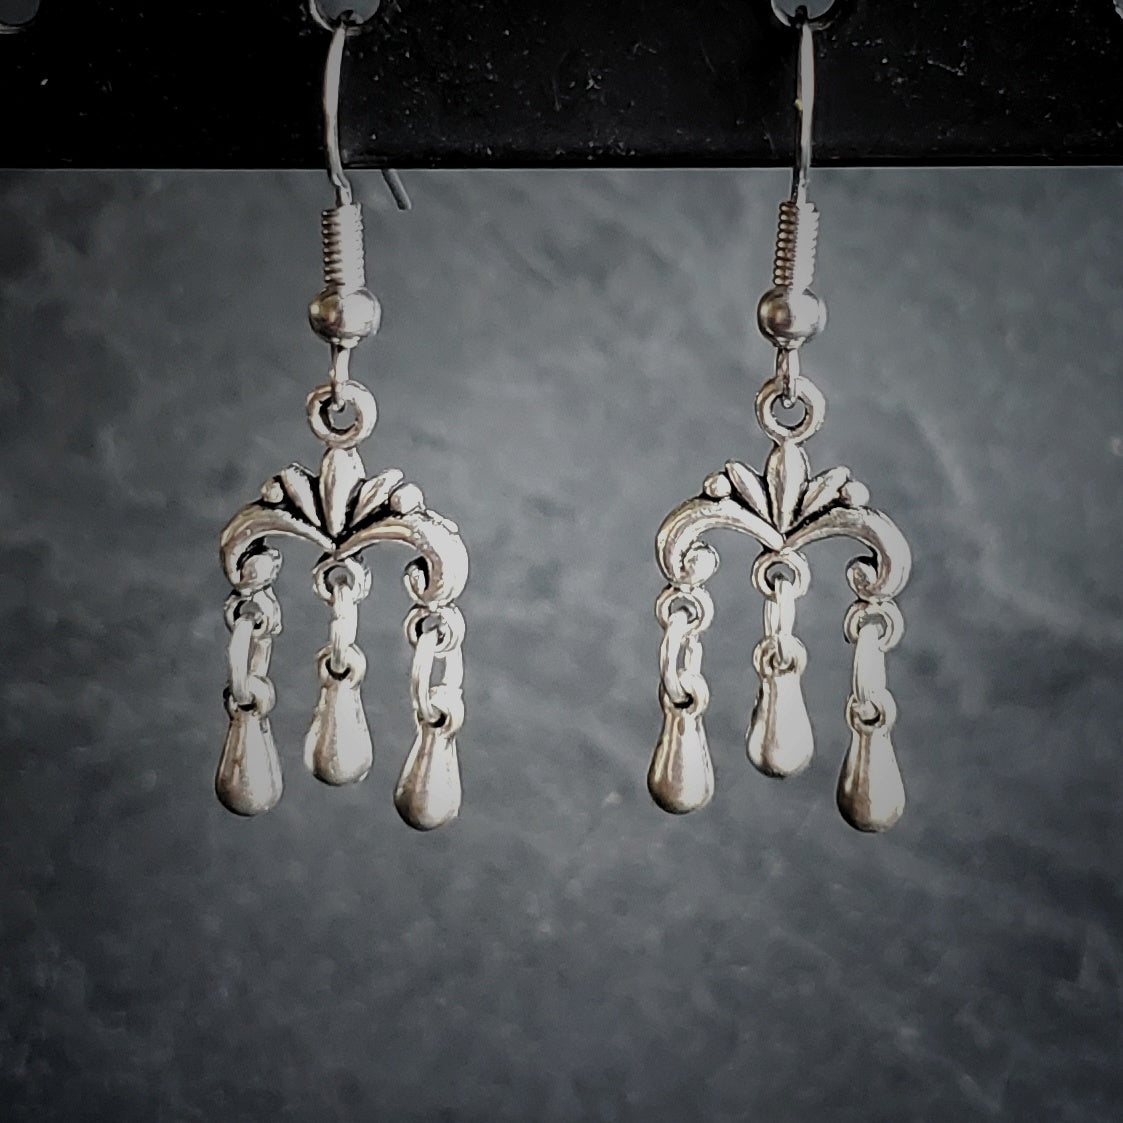 Tiny Chandelier Earrings Festival Jewelry